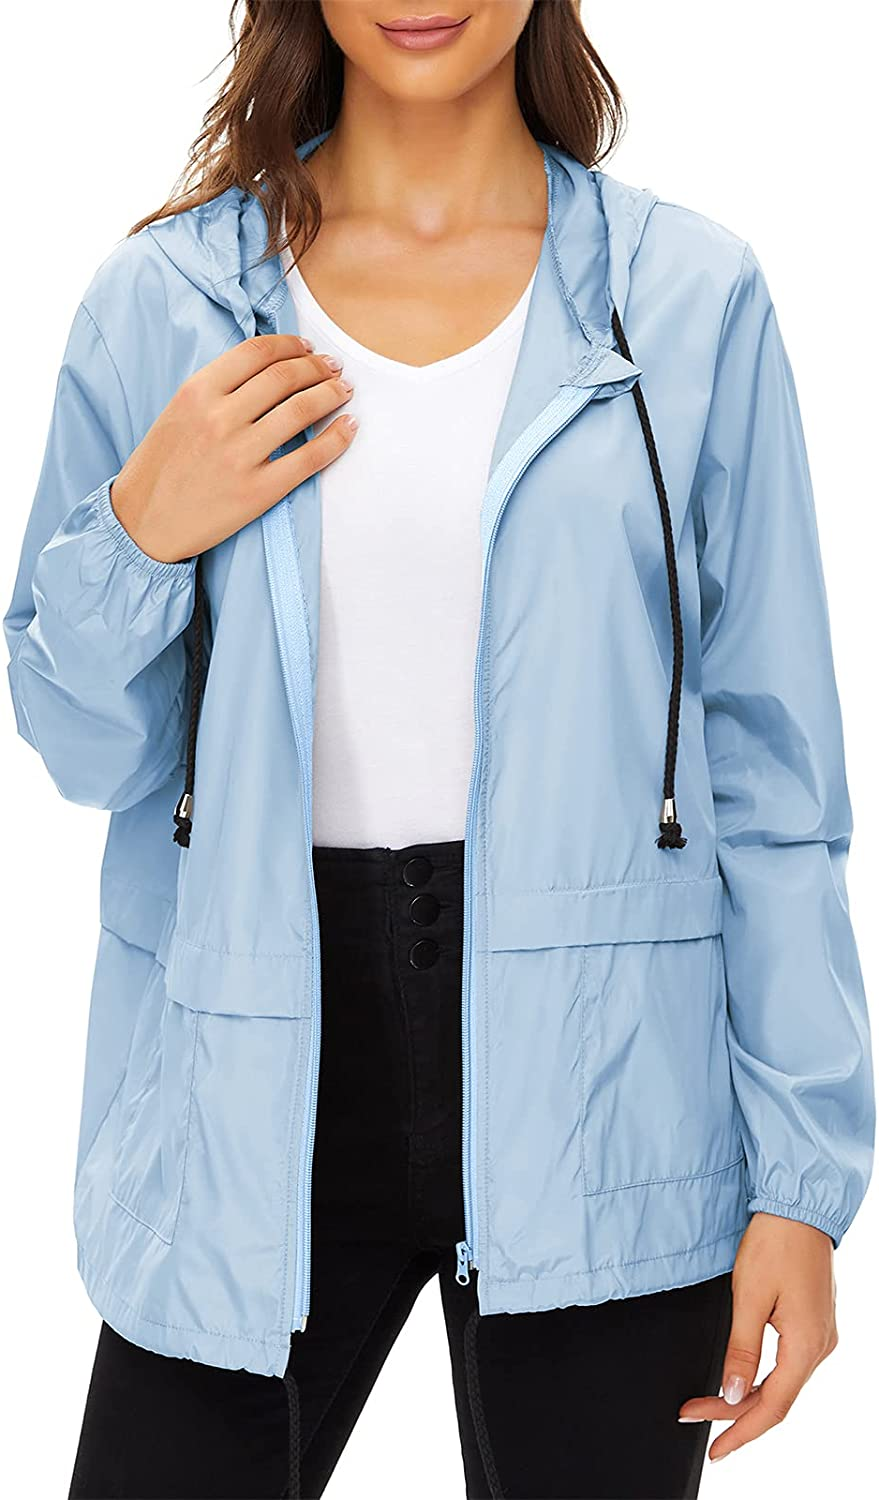 Century Star Plus Size Rain for Animer and price revision Waterproof Our shop most popular Windbre Jackets Women